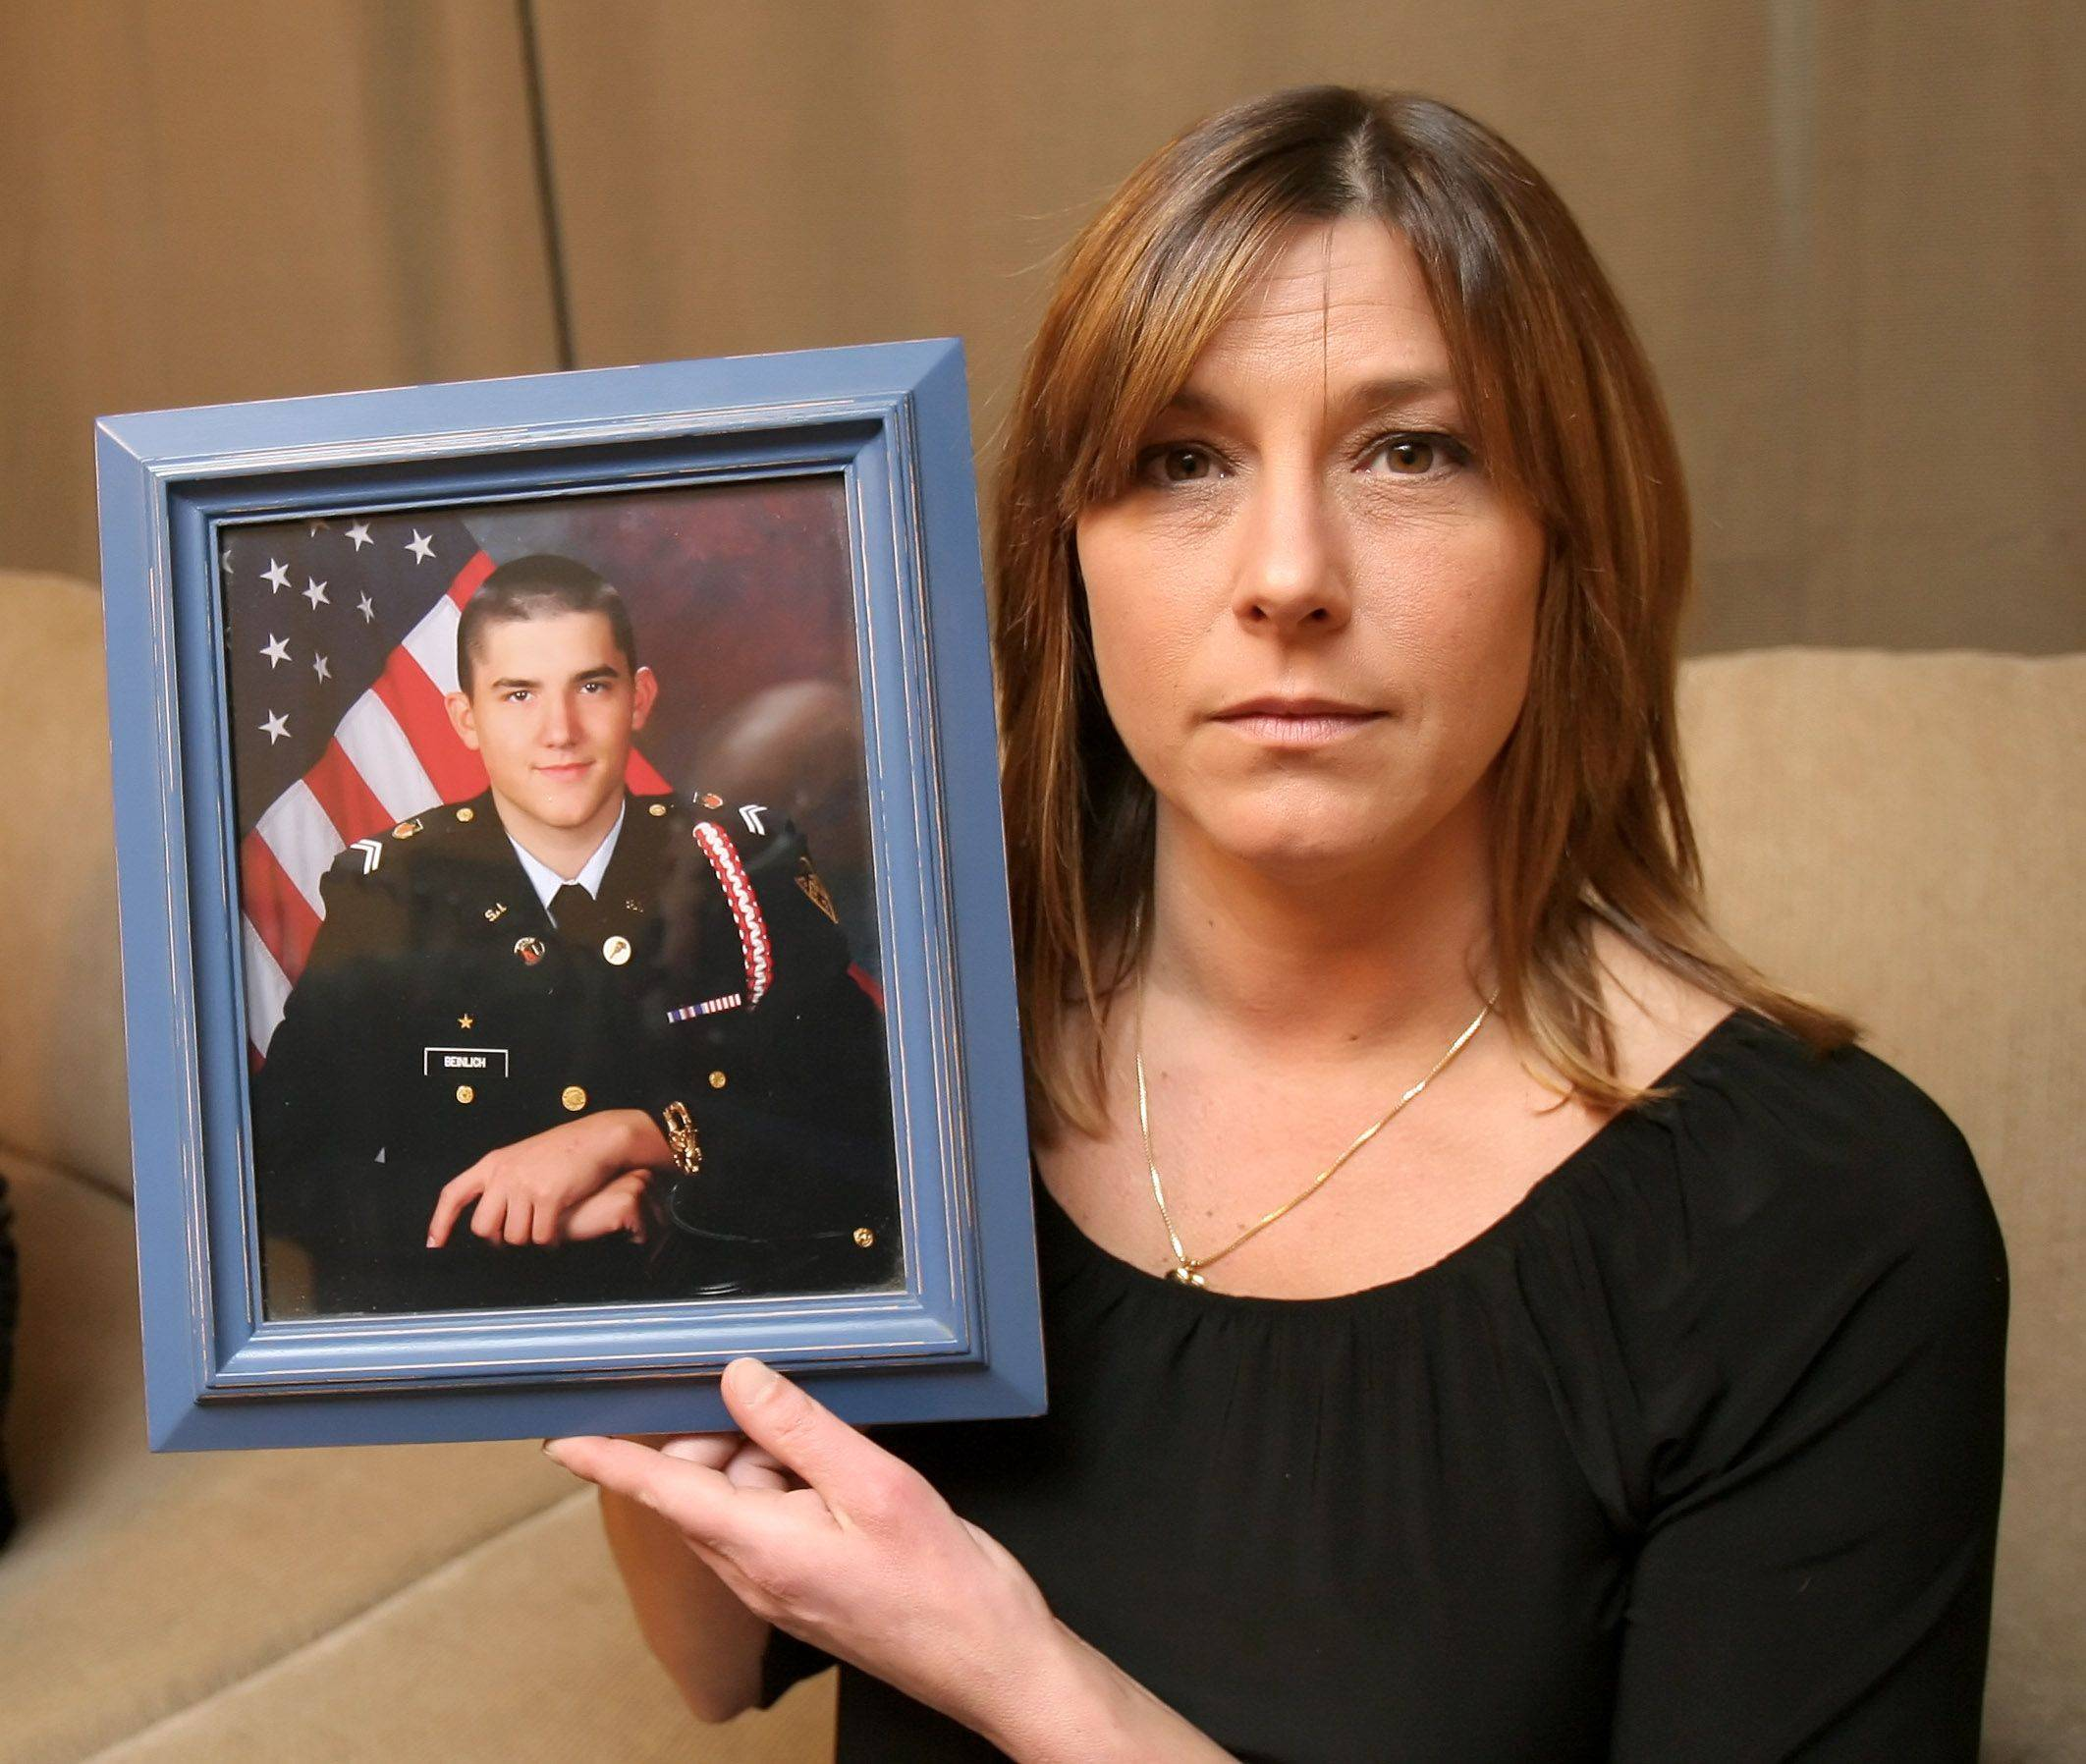 In this 2009 photo, Chrystal Beinlich O'Halloran holds a picture of her son, Nick, who she lost to a heroin overdose in 2007. It's now her mission to educate parents about drugs, and she offers free drug testing kits through a foundation in her son's memory at nickbeinlich.com.